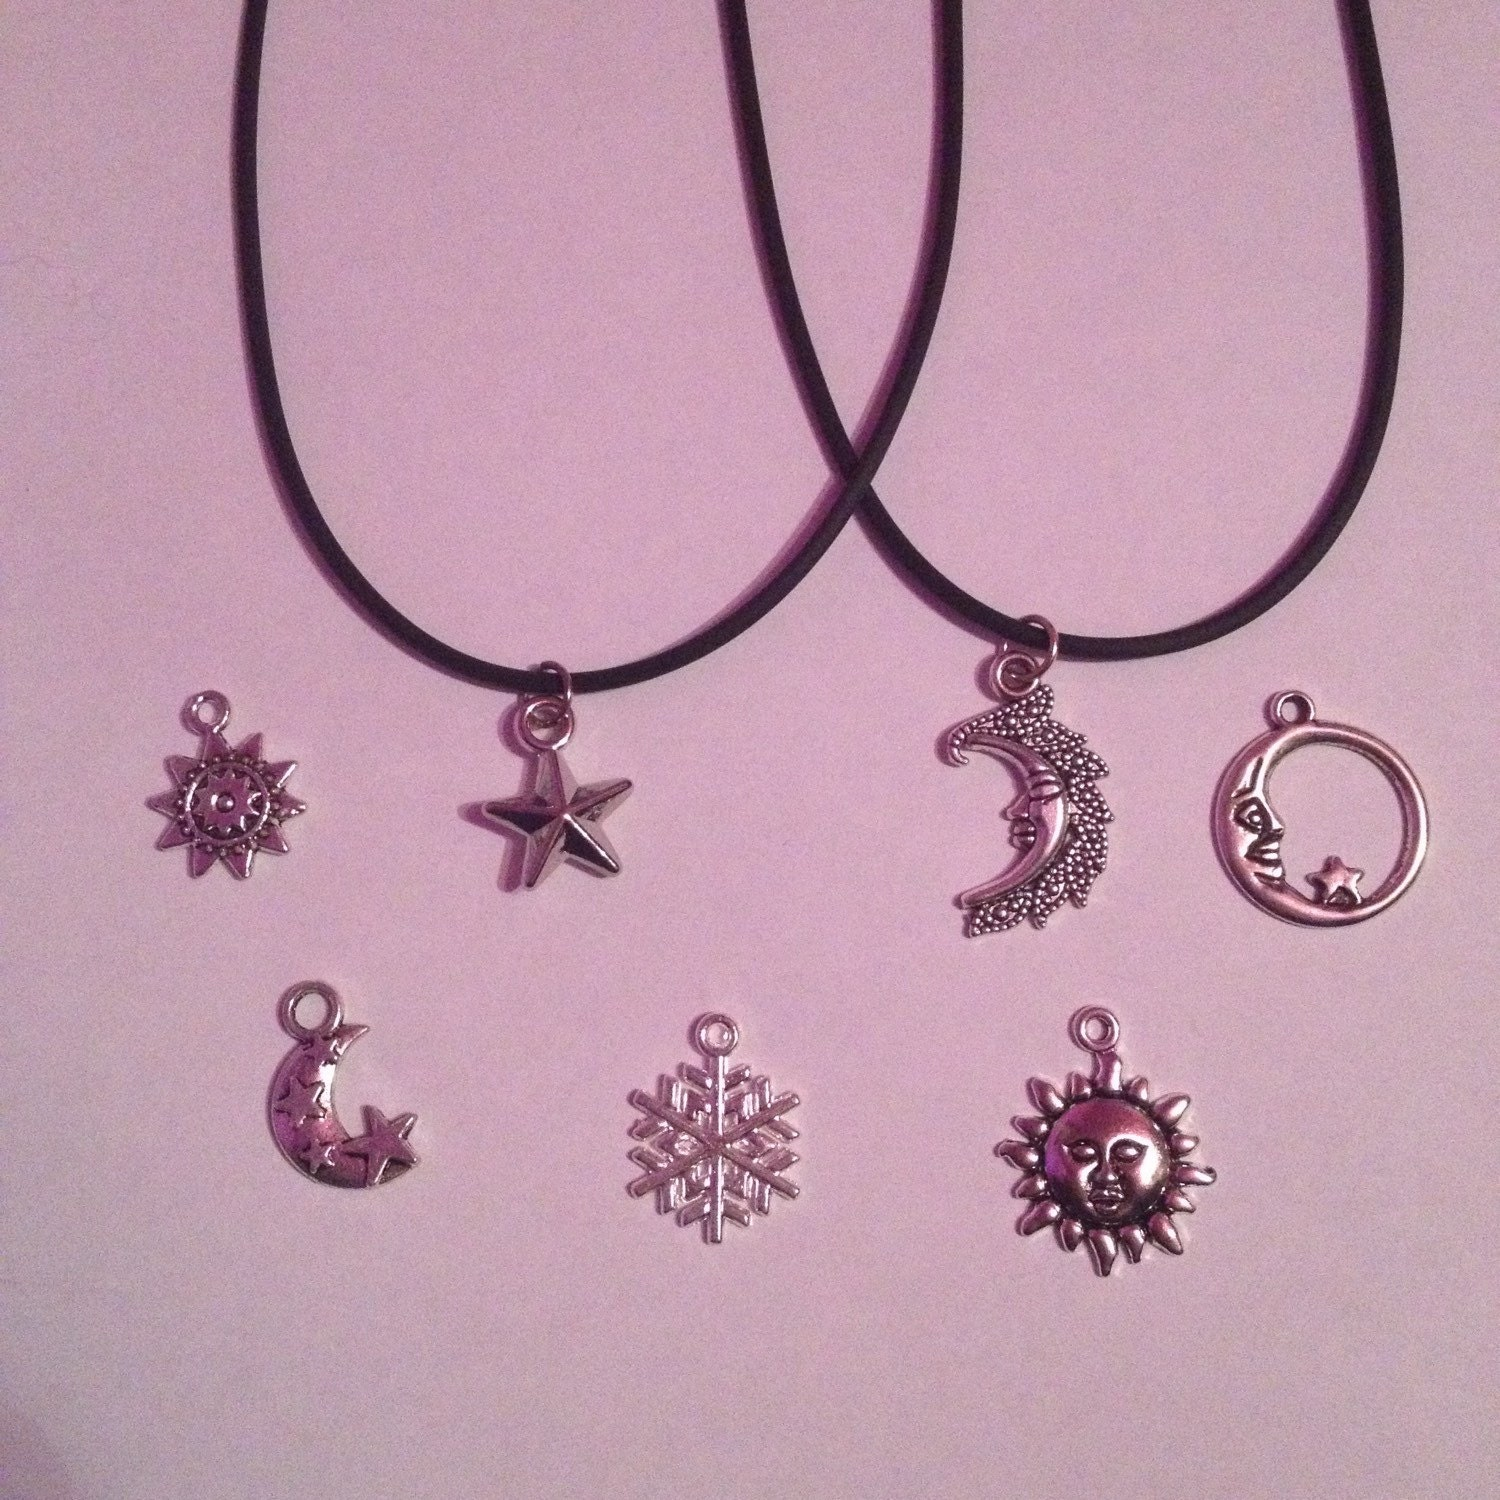 Moon Sun and Star Choker Necklaces